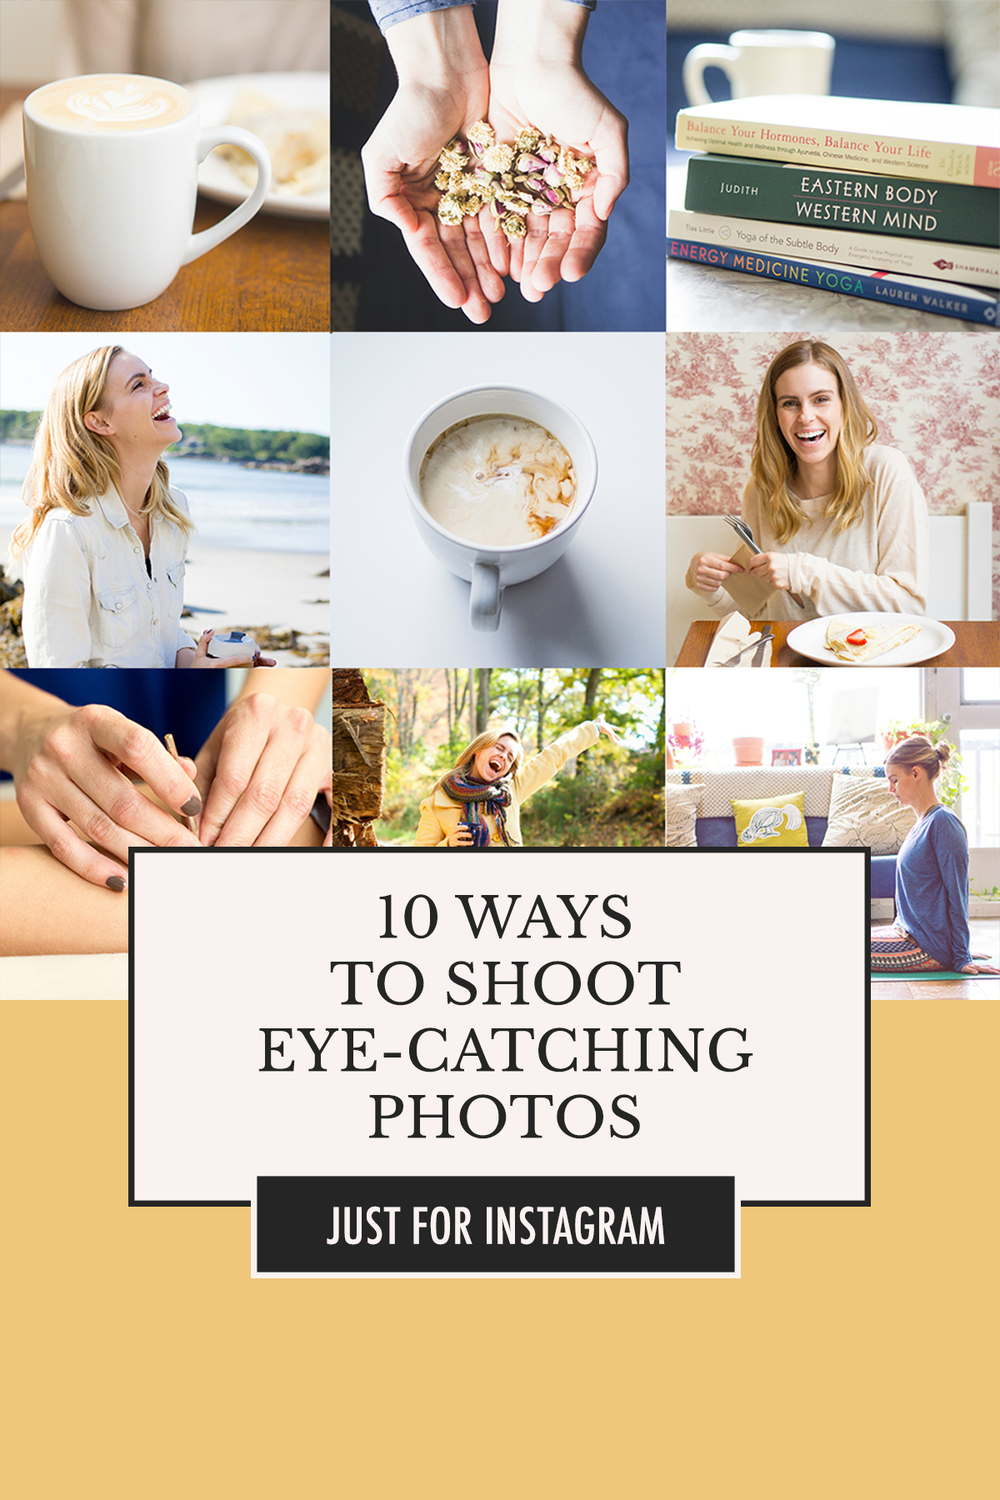 Are your Instagram photos boring? 10 Ways to Shoot Eye-Catching Images for Instagram | Alexis the Greek